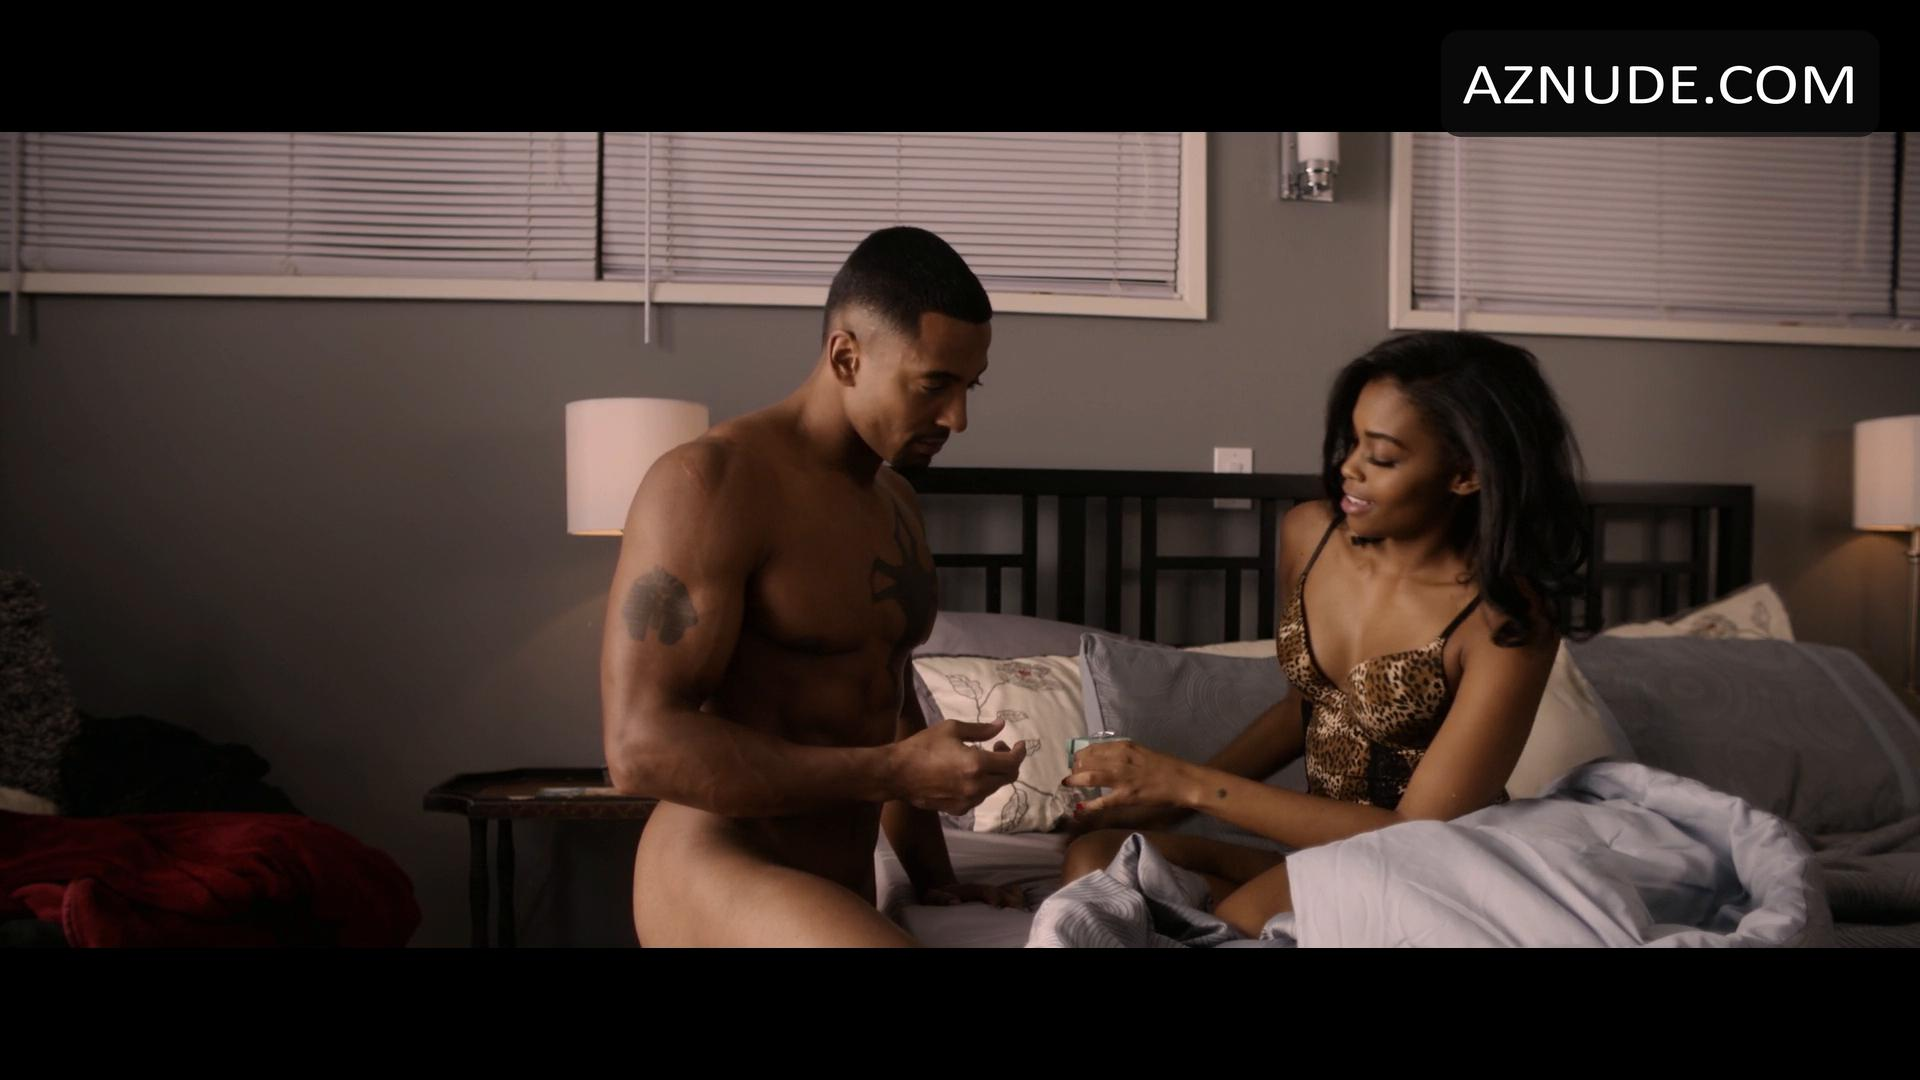 Share christian keyes in the nude all can